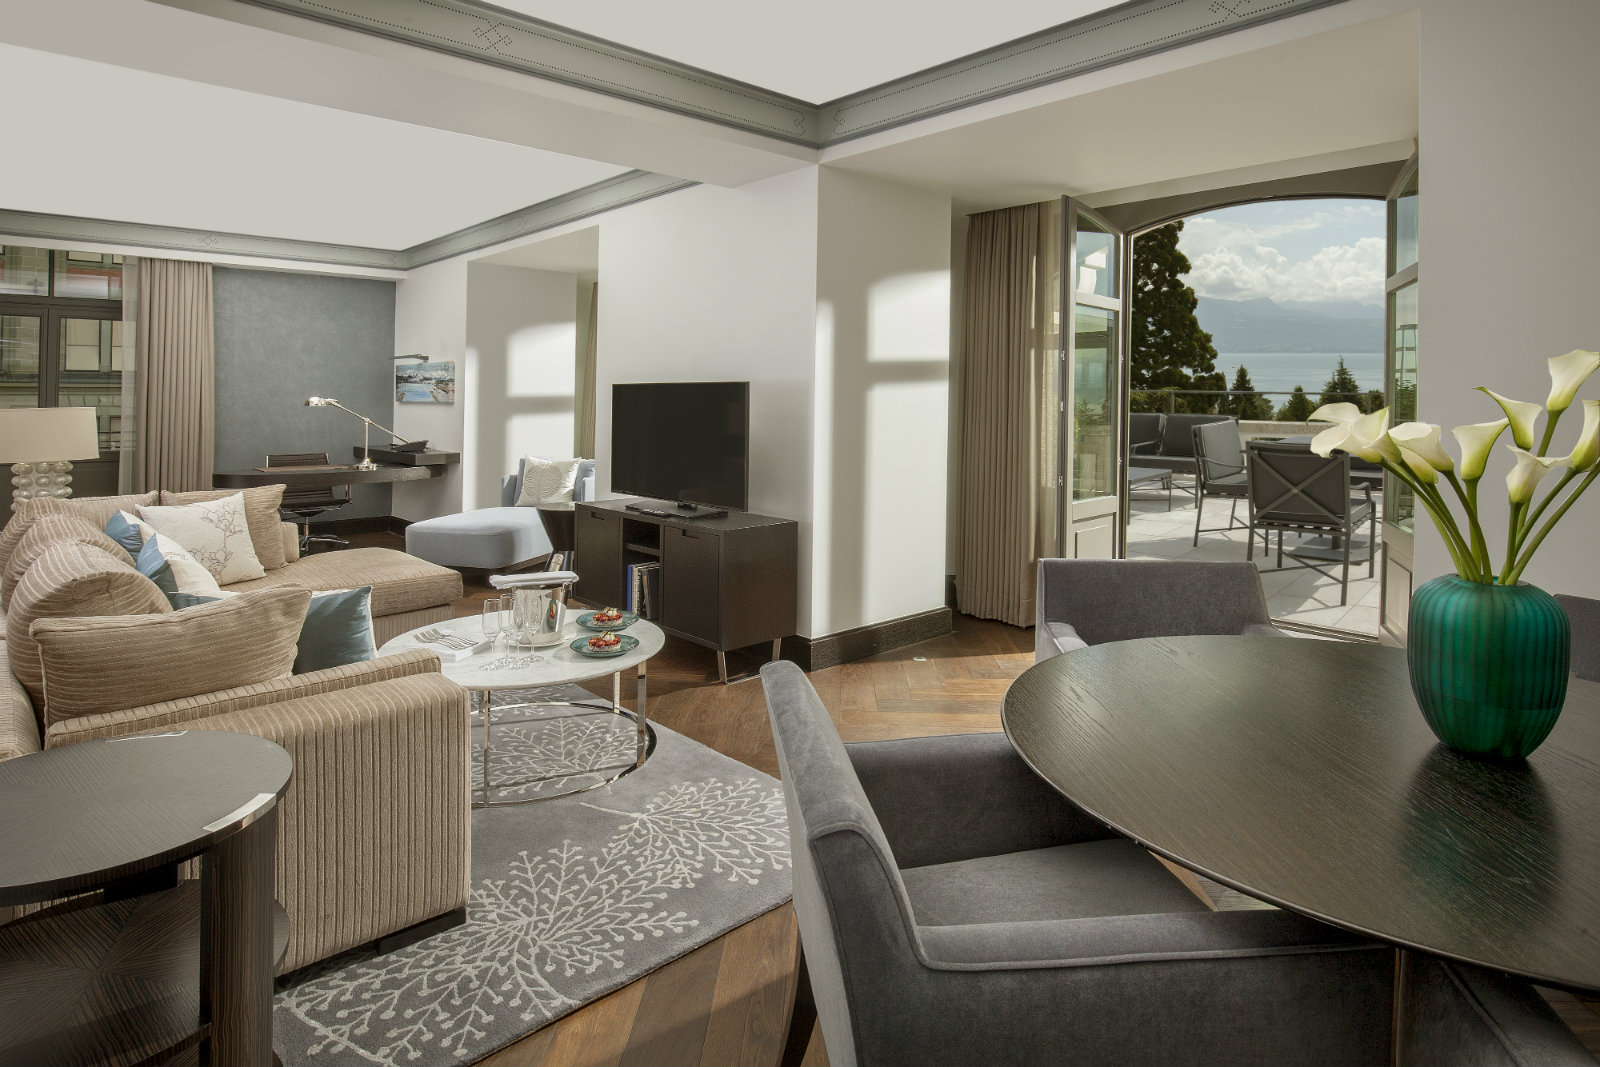 gallery-rooms-and-suites-hotel-lausanne-royal-savoy-12